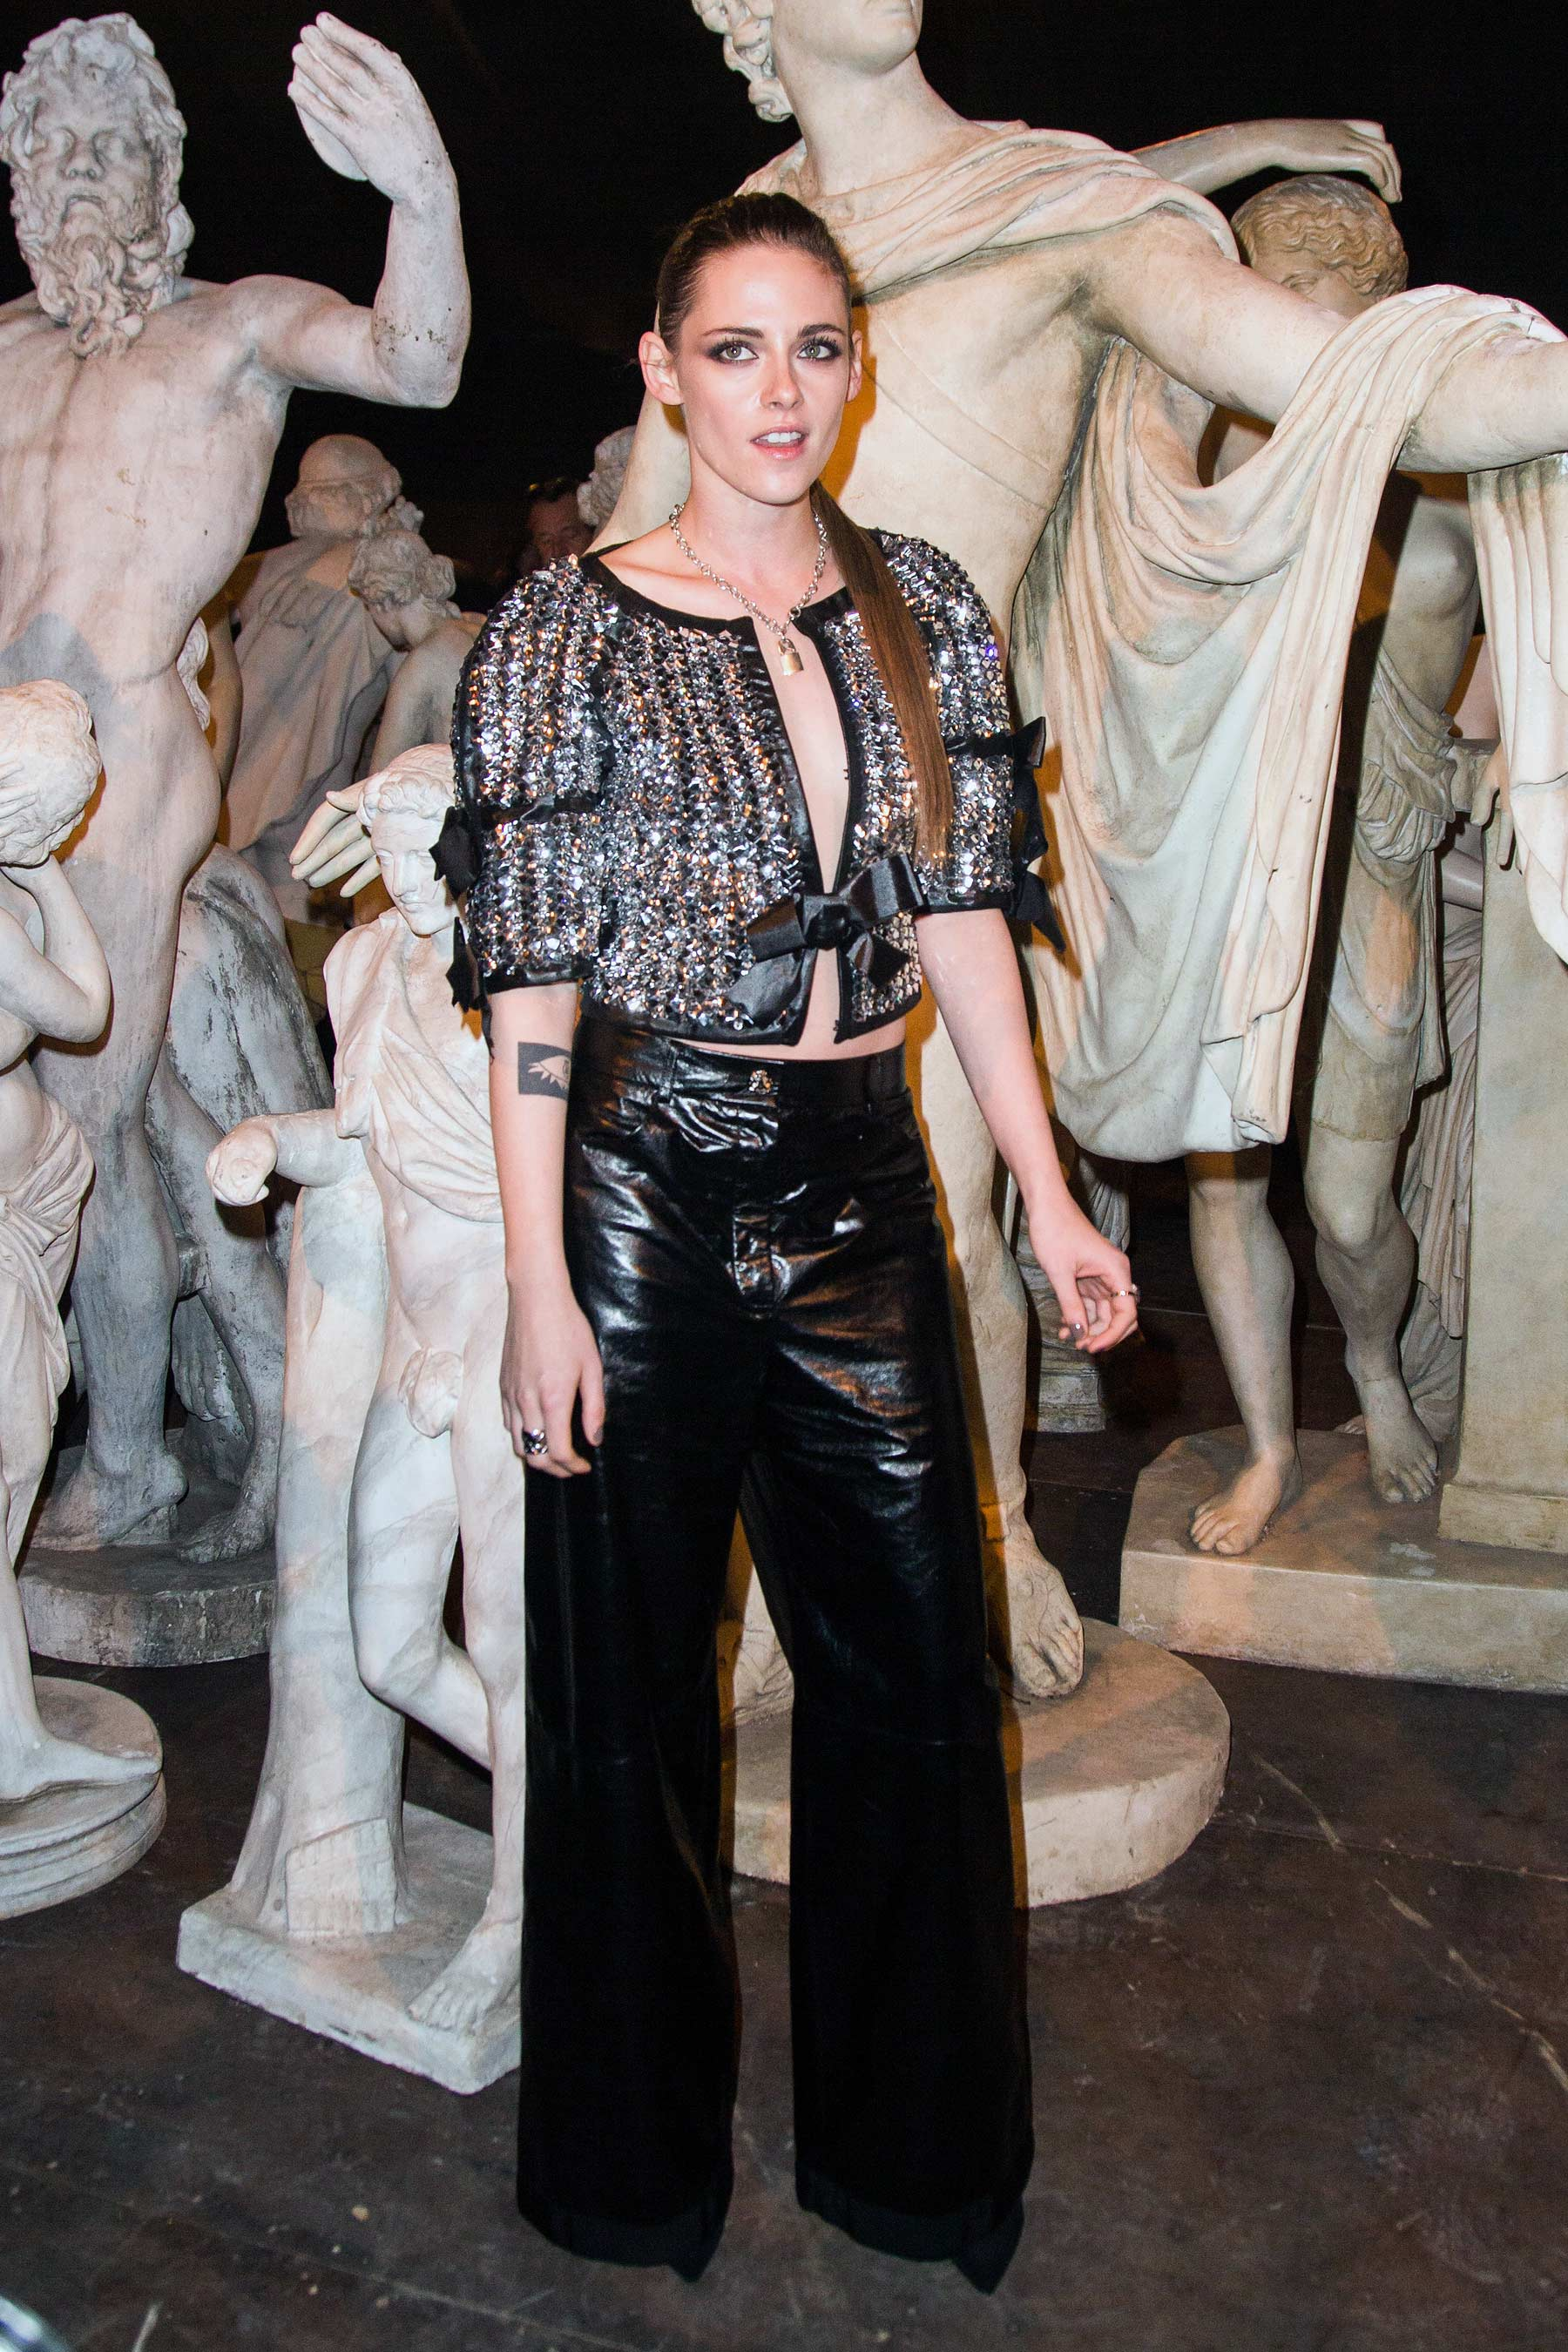 Kristen Stewart attends the Chanel Metiers d'Art 2015/16 Fashion Show